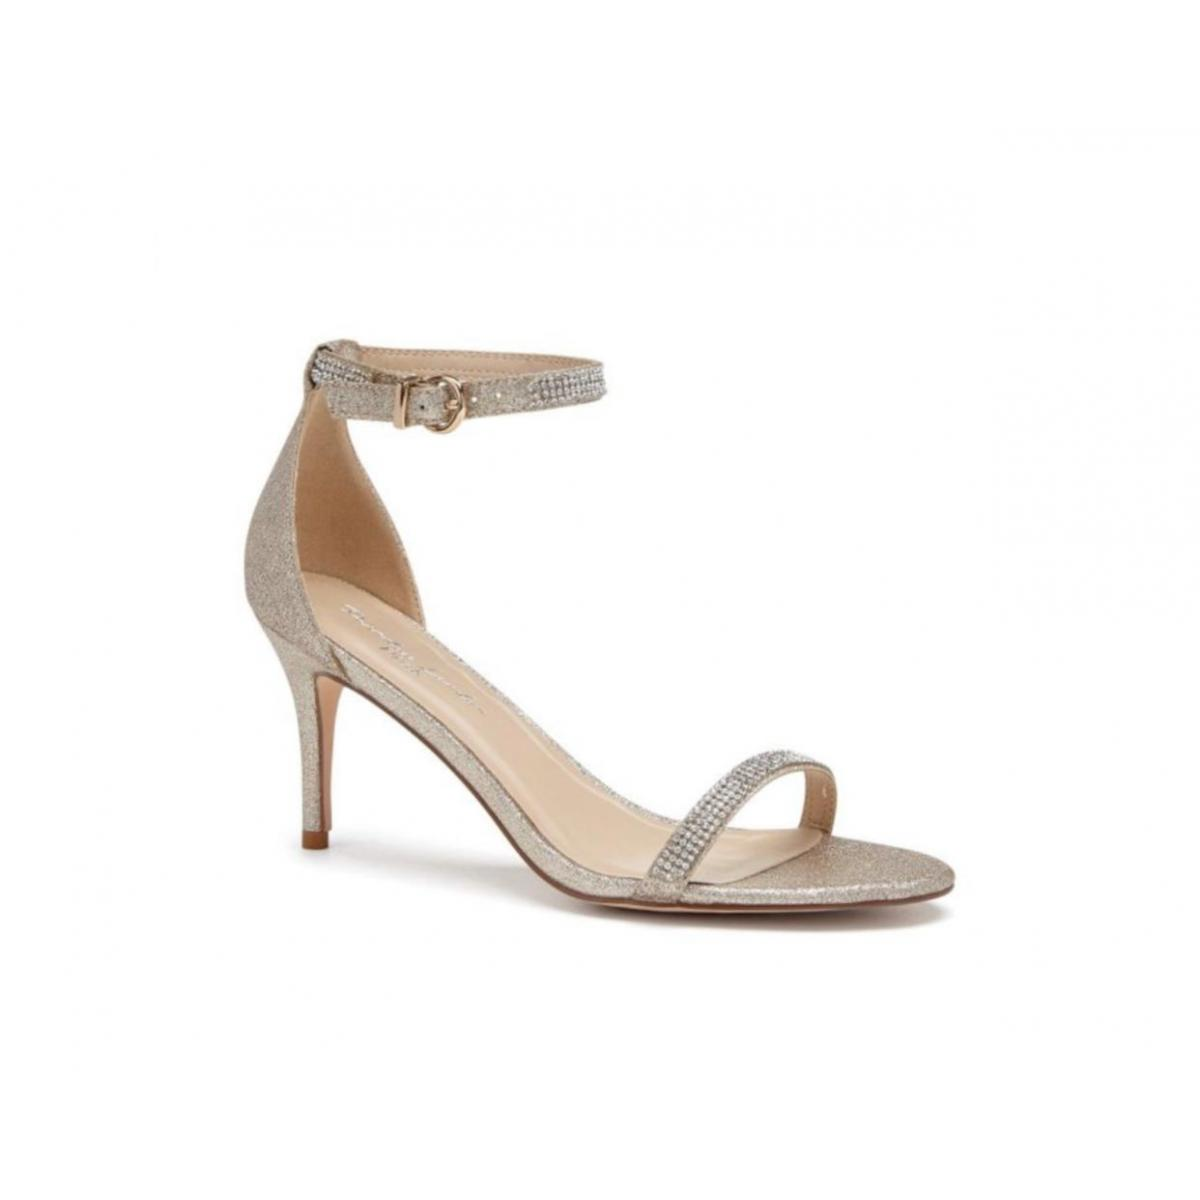 Pink Paradox Star - Nude Shimmer High Heel Barely There Sandal 1